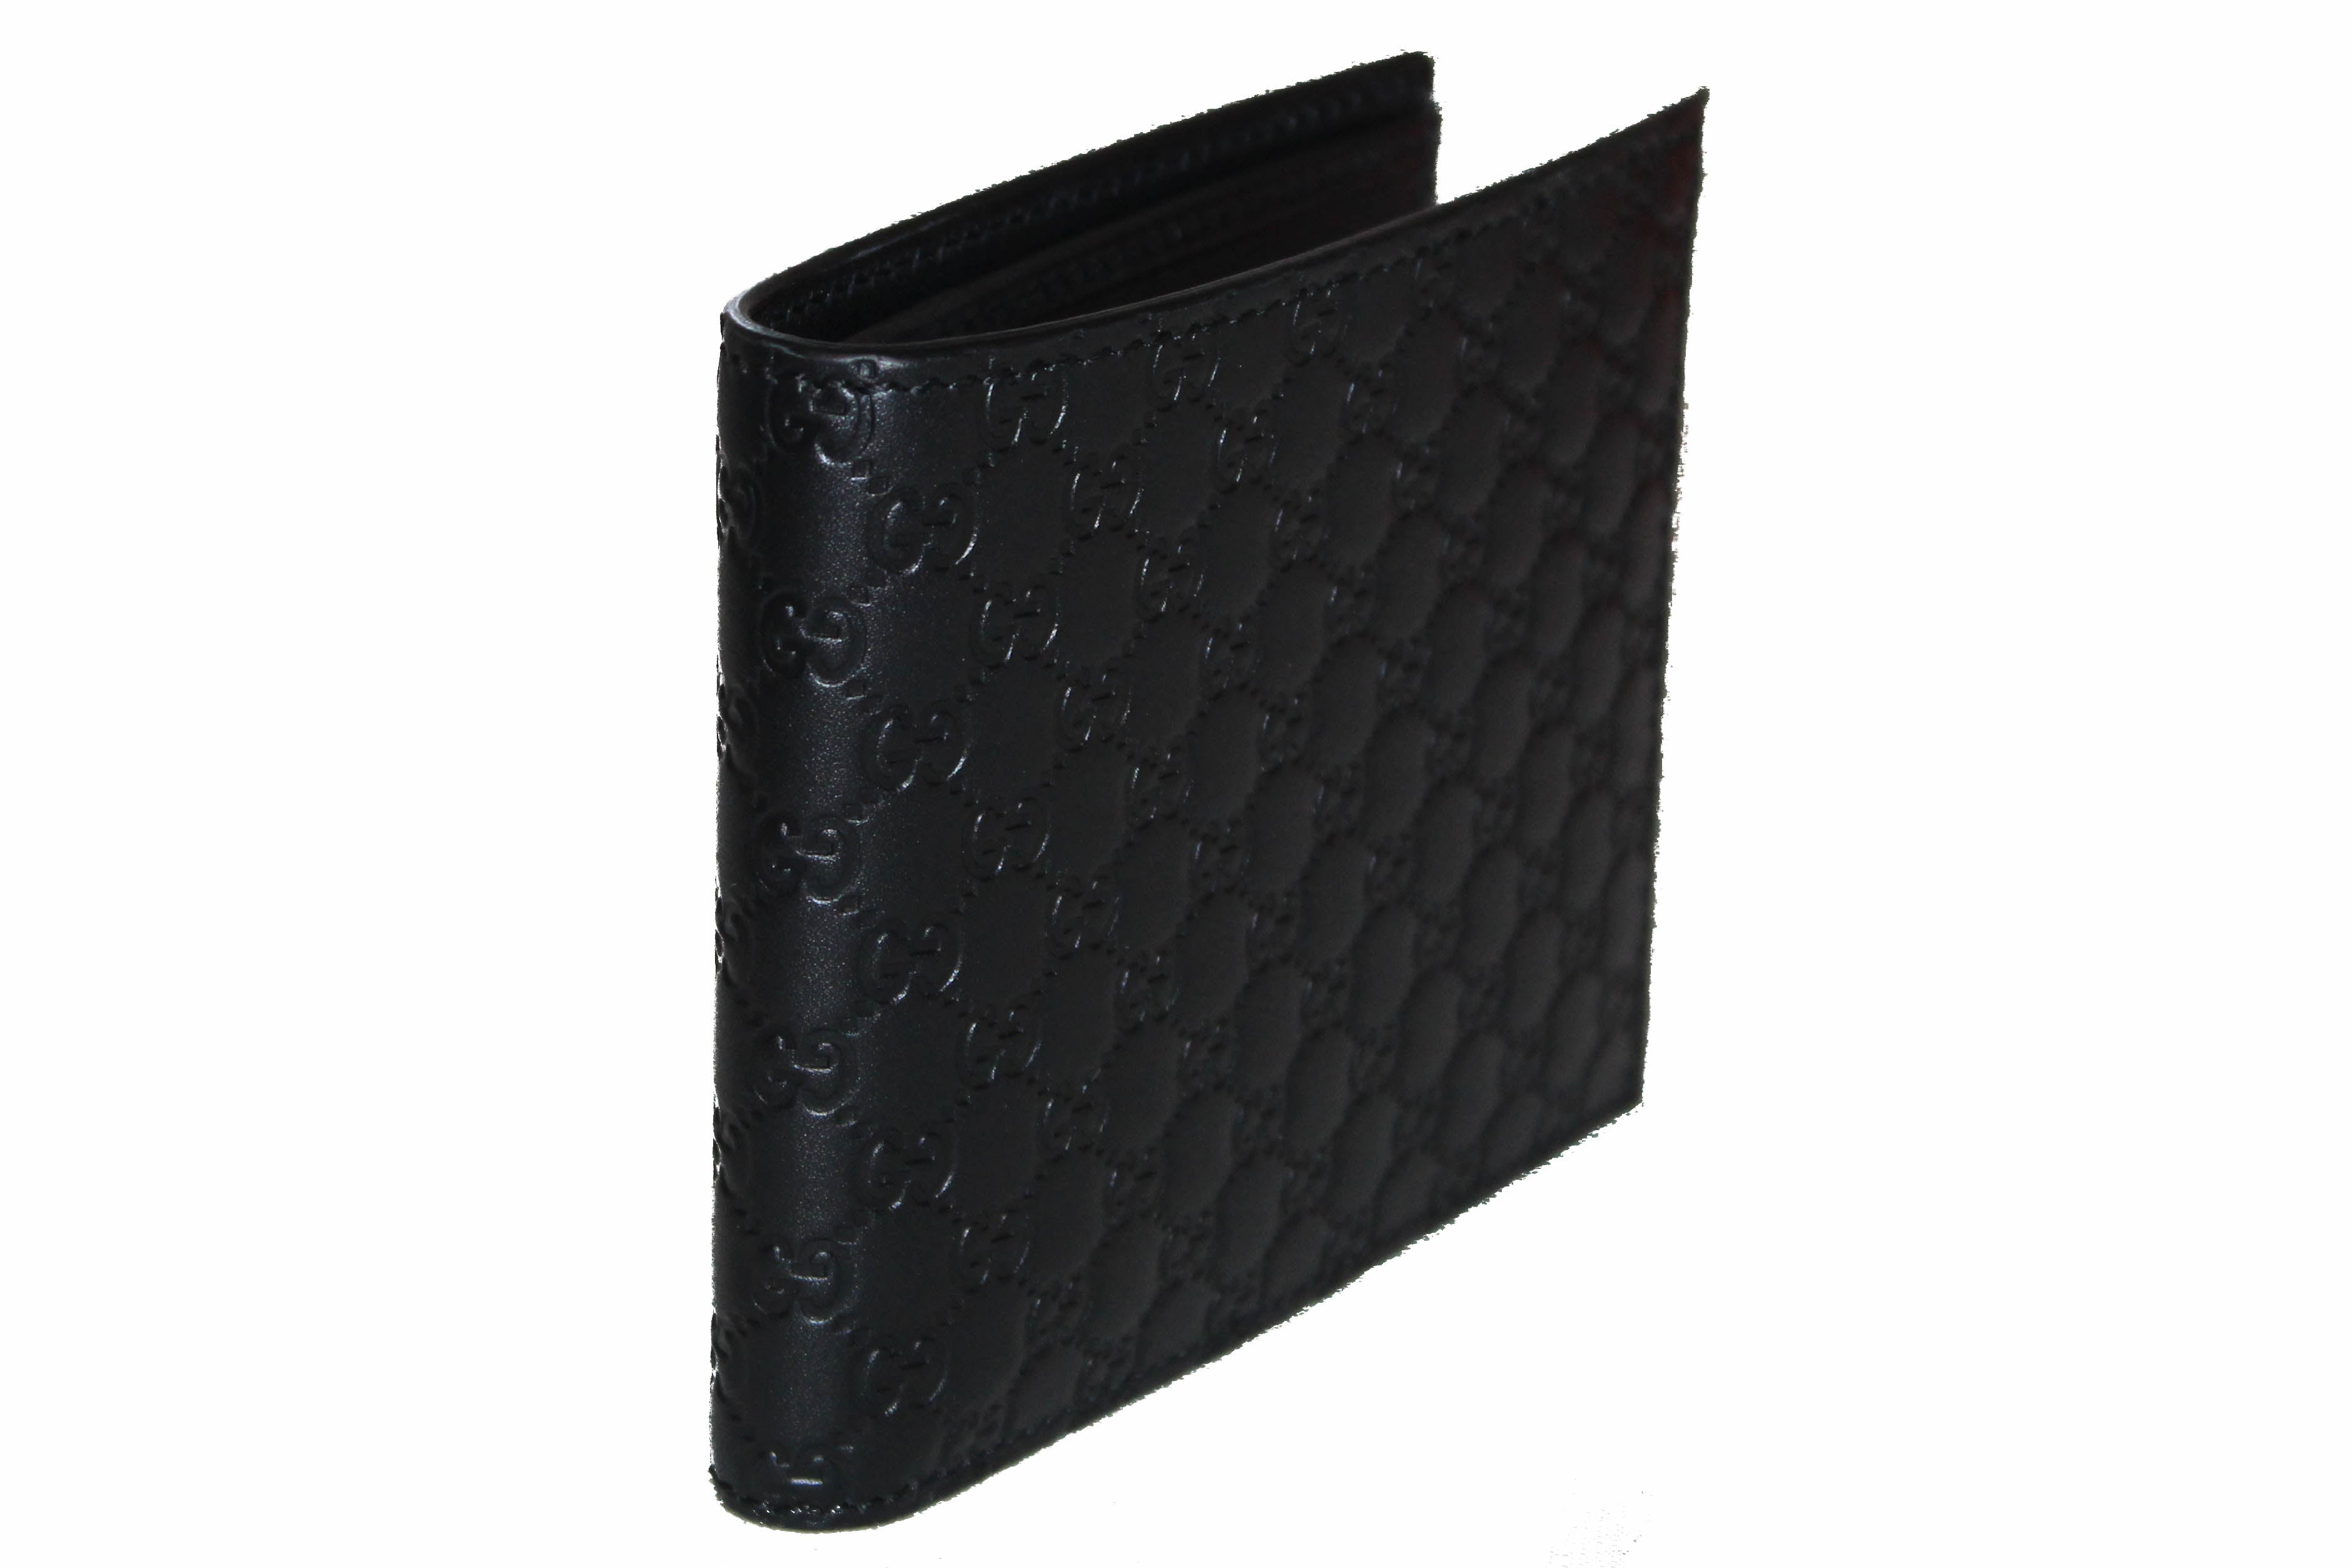 Authentic New Gucci Black Microguccissima Leather Bi-fold Men's Wallet 260987